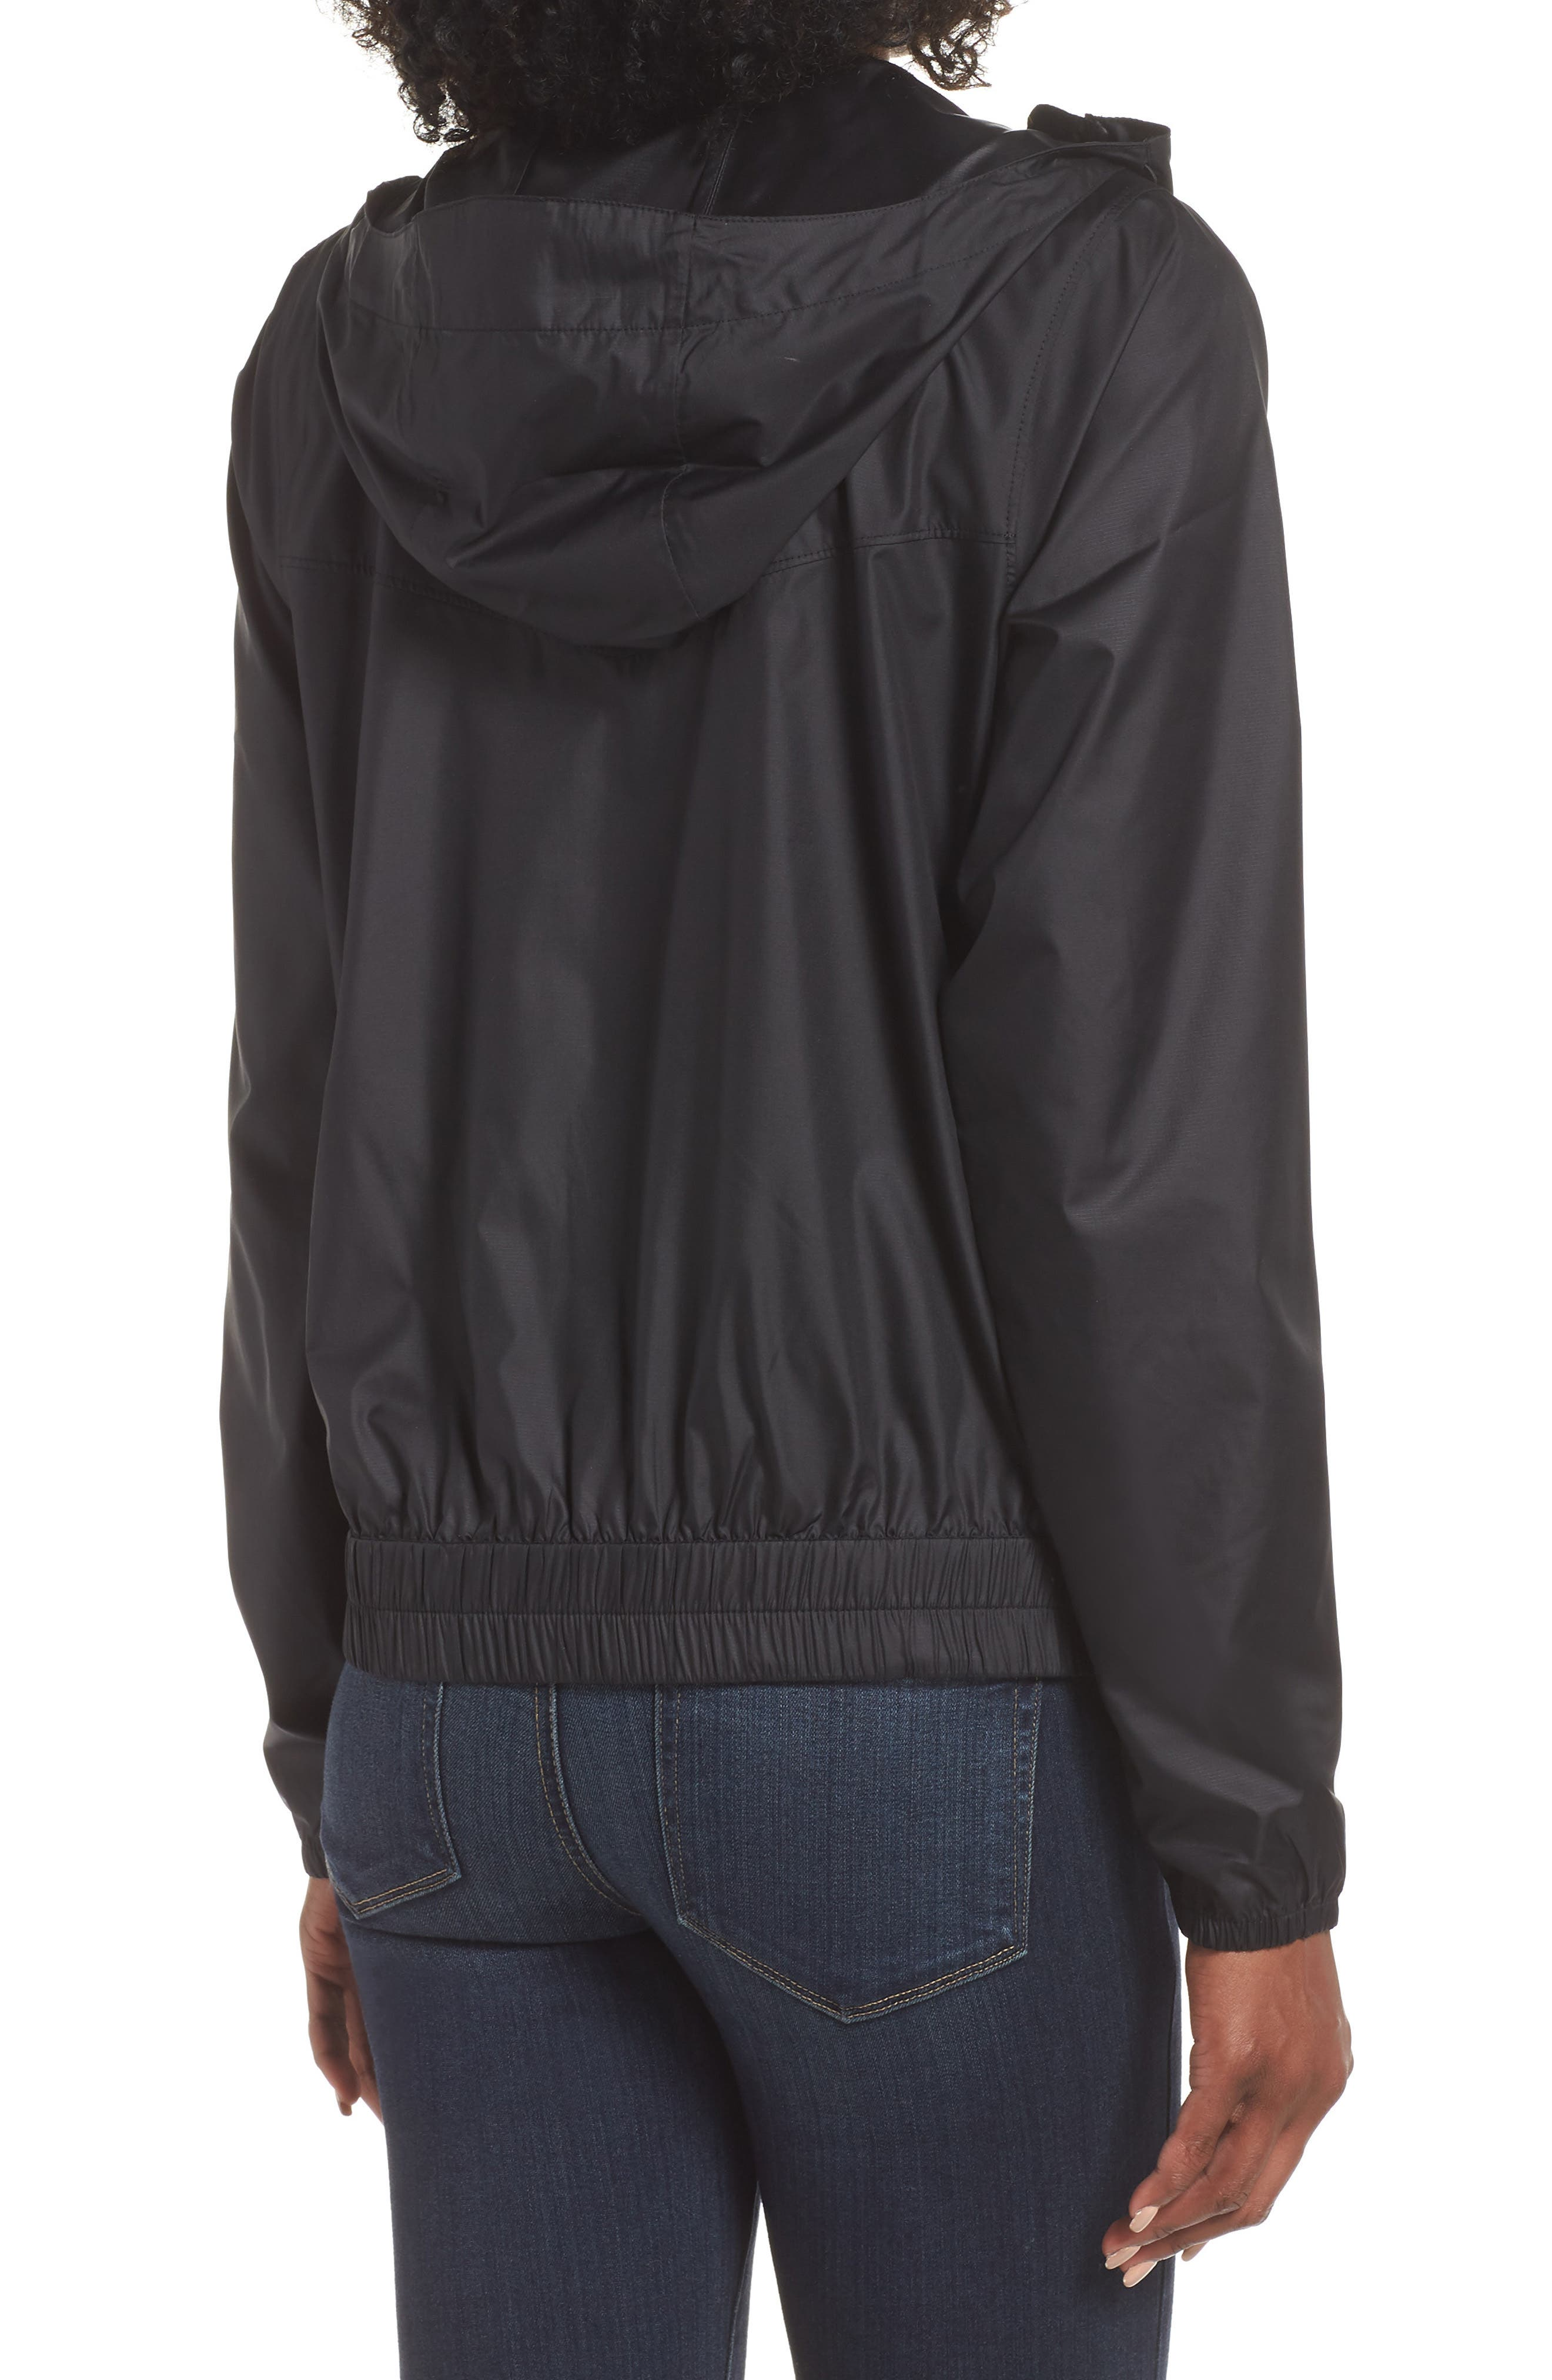 THE NORTH FACE, Cyclone 3.0 WindWall<sup>®</sup> Jacket, Alternate thumbnail 2, color, 001